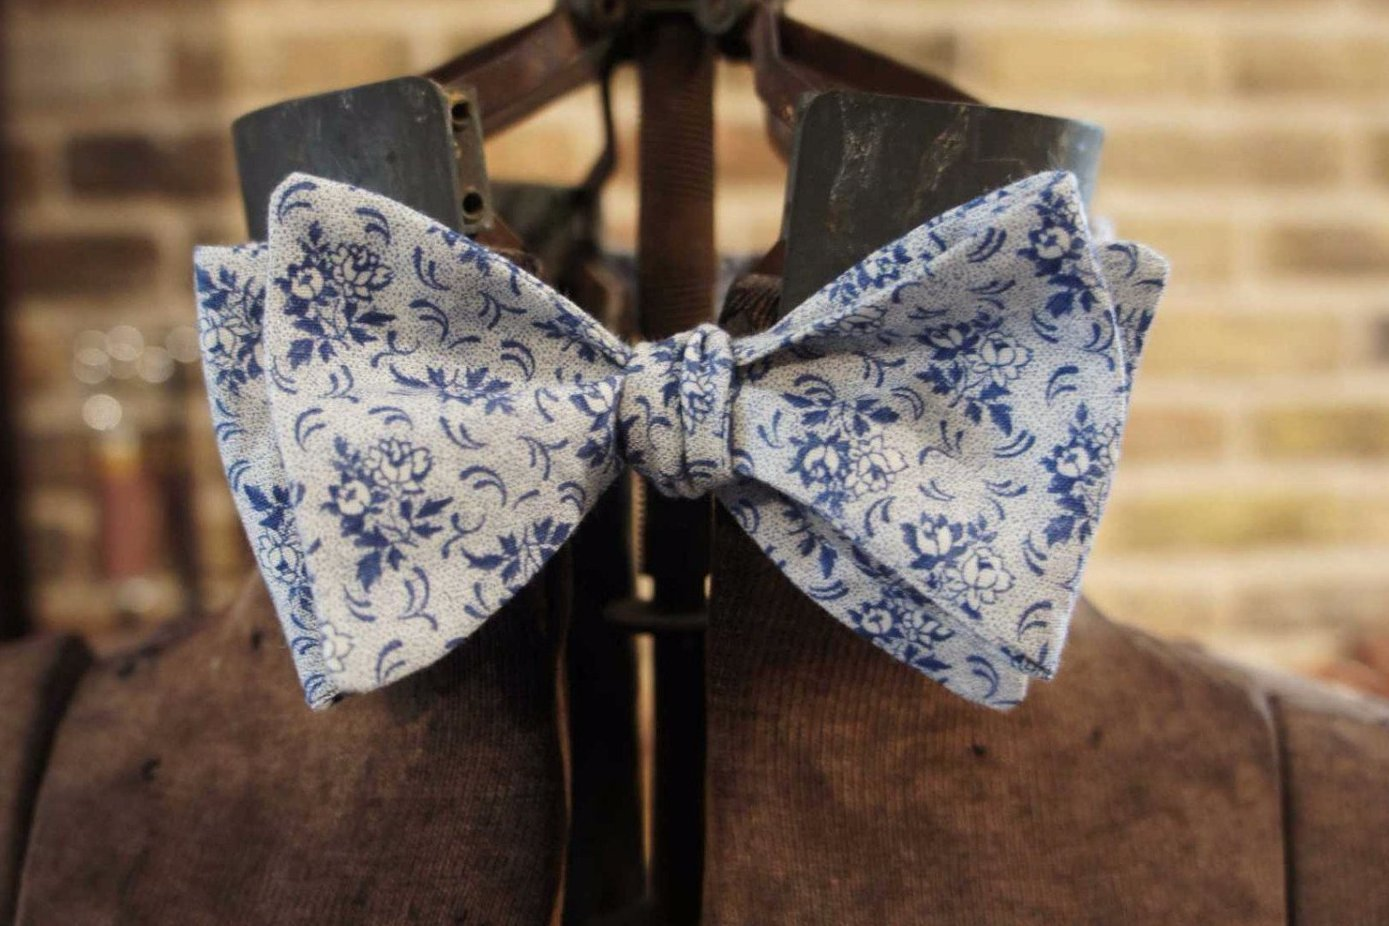 Light Blue Floral - Edwardian 1920's 1930's dandy cotton bowtie BYBT-vin55 1 - Bykowski Tailor & Garb